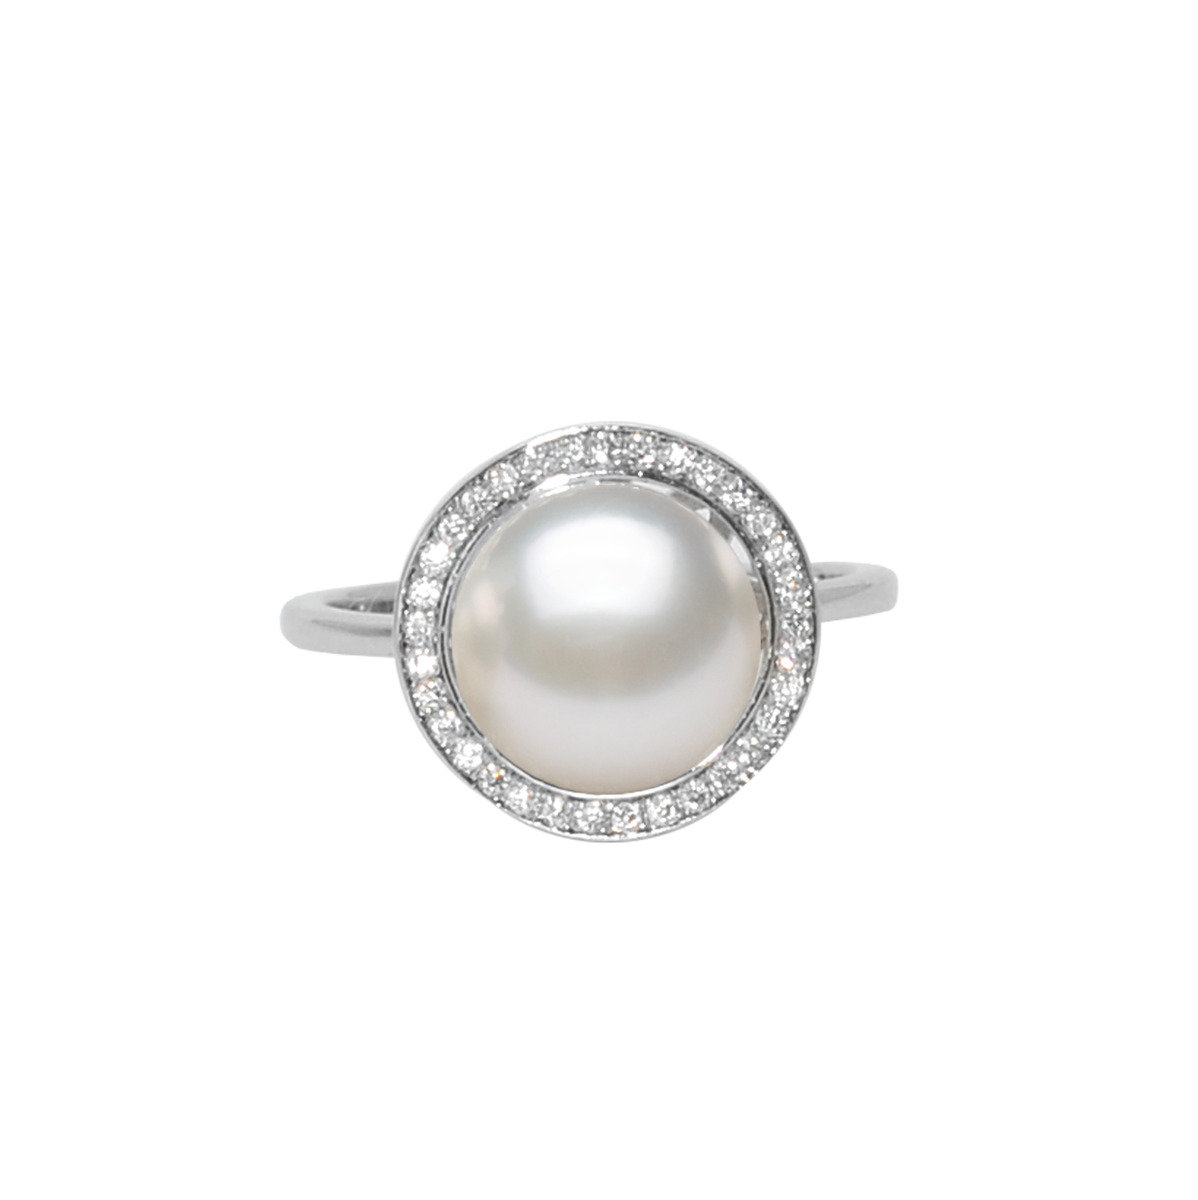 Sunset- 9-10mm Cultured fresh water pearl with cz mounted 925 silver ring